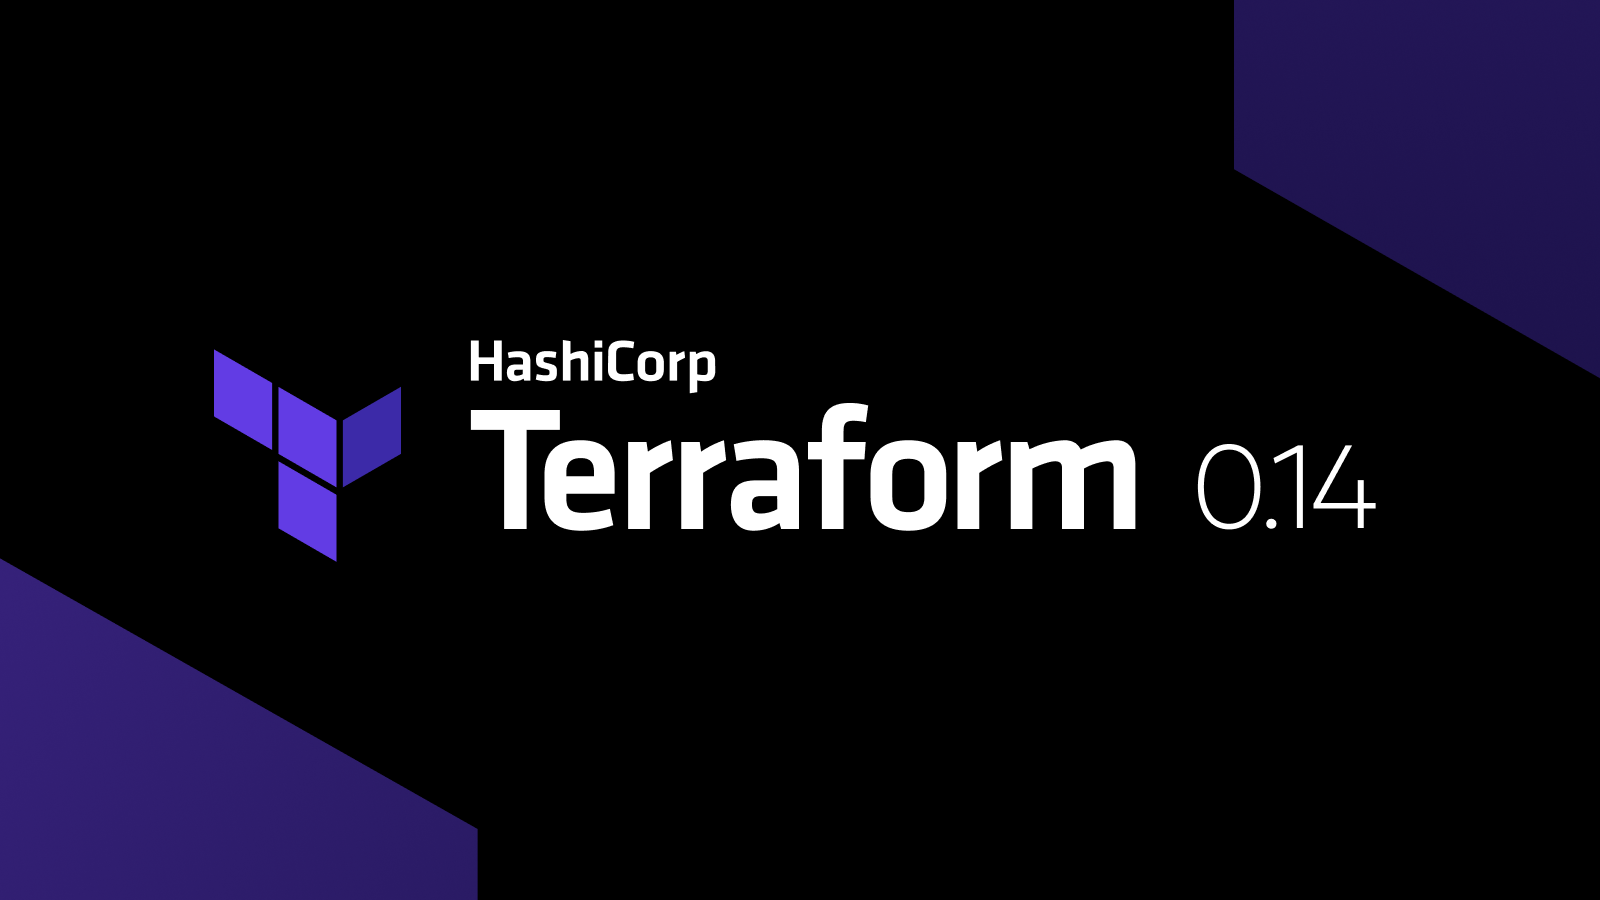 Announcing HashiCorp Terraform 0.14 General Availability